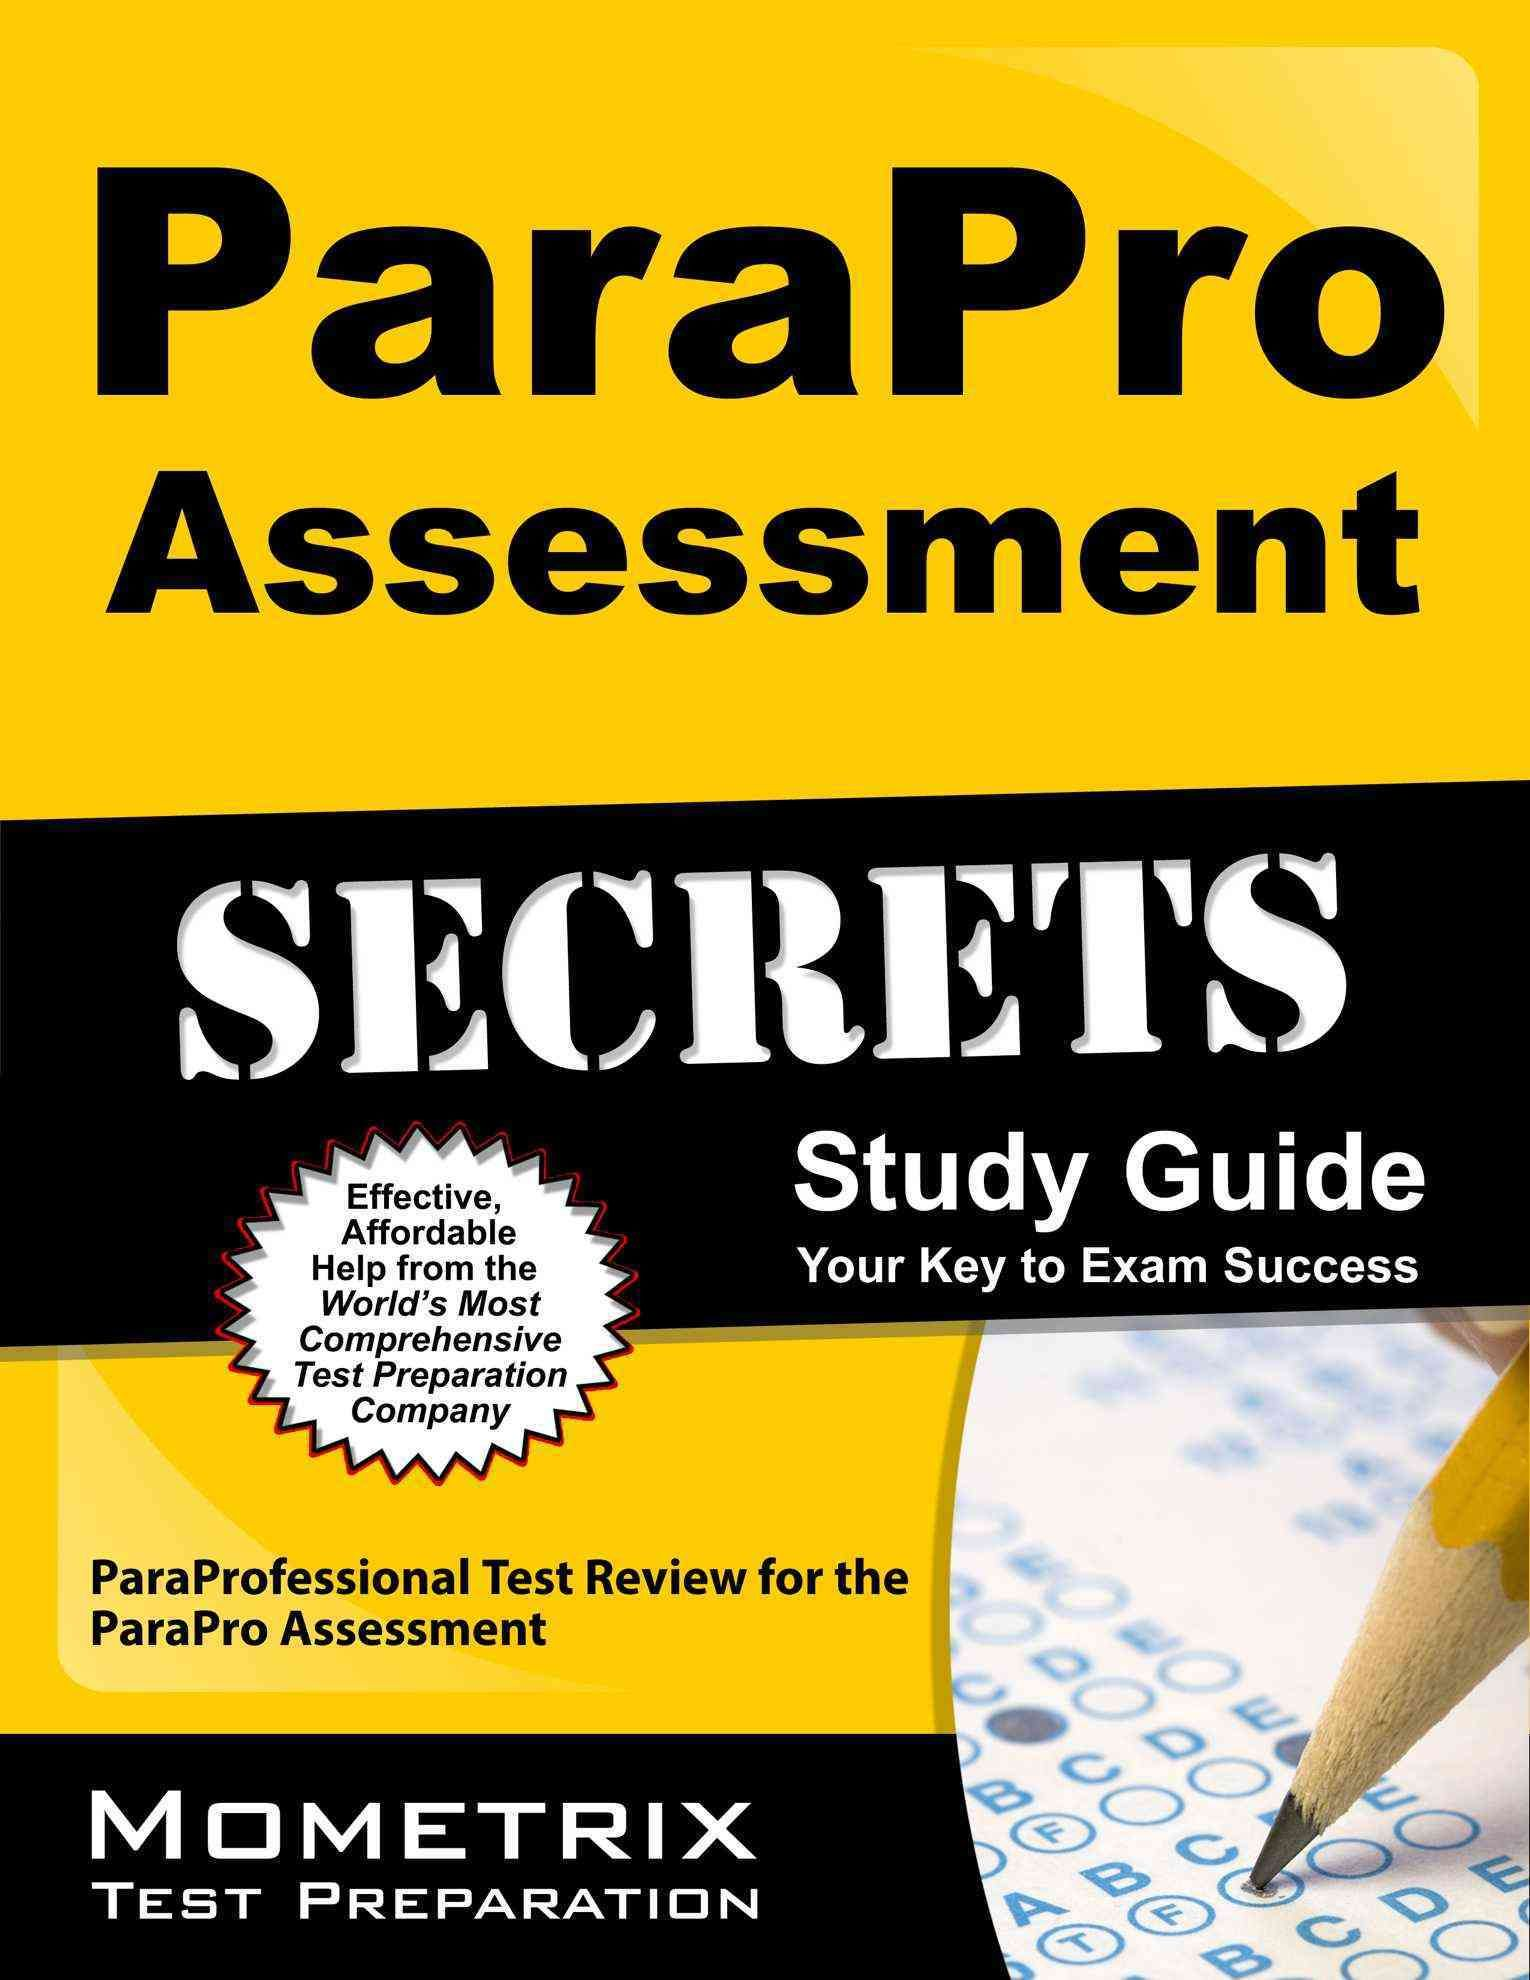 Parapro assessment secrets your key to exam success parapro assessment secrets your key to exam success paraprofessional test review for the parapro malvernweather Gallery